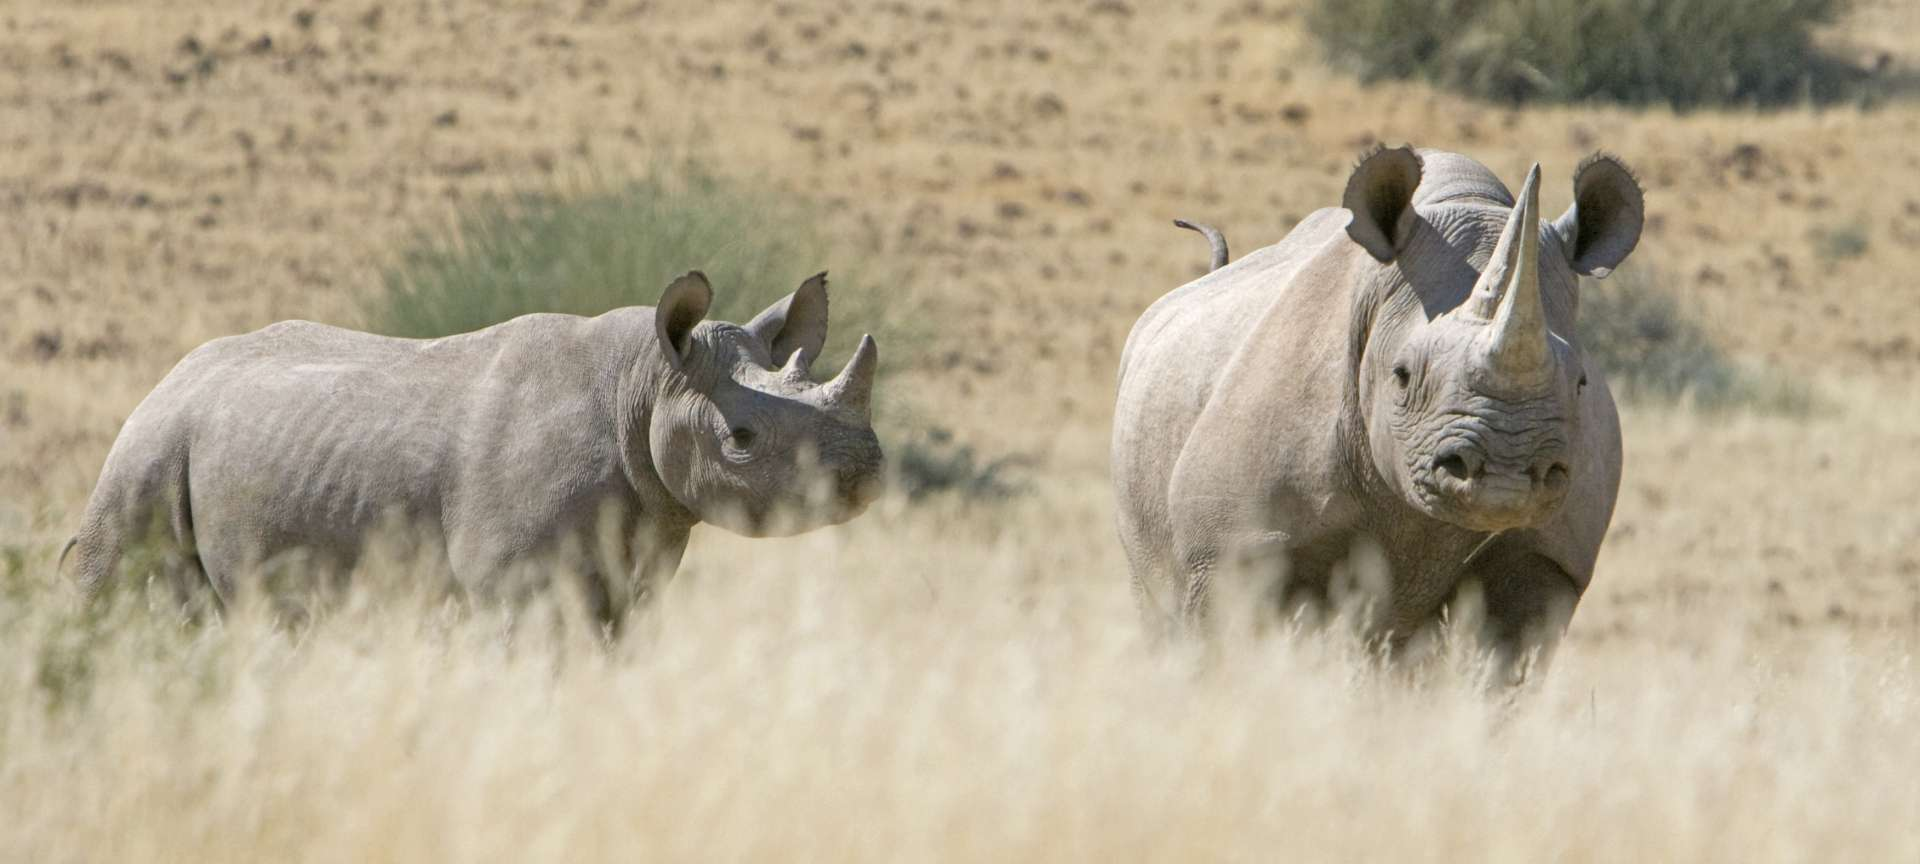 rhino in pilanesberg wildlife